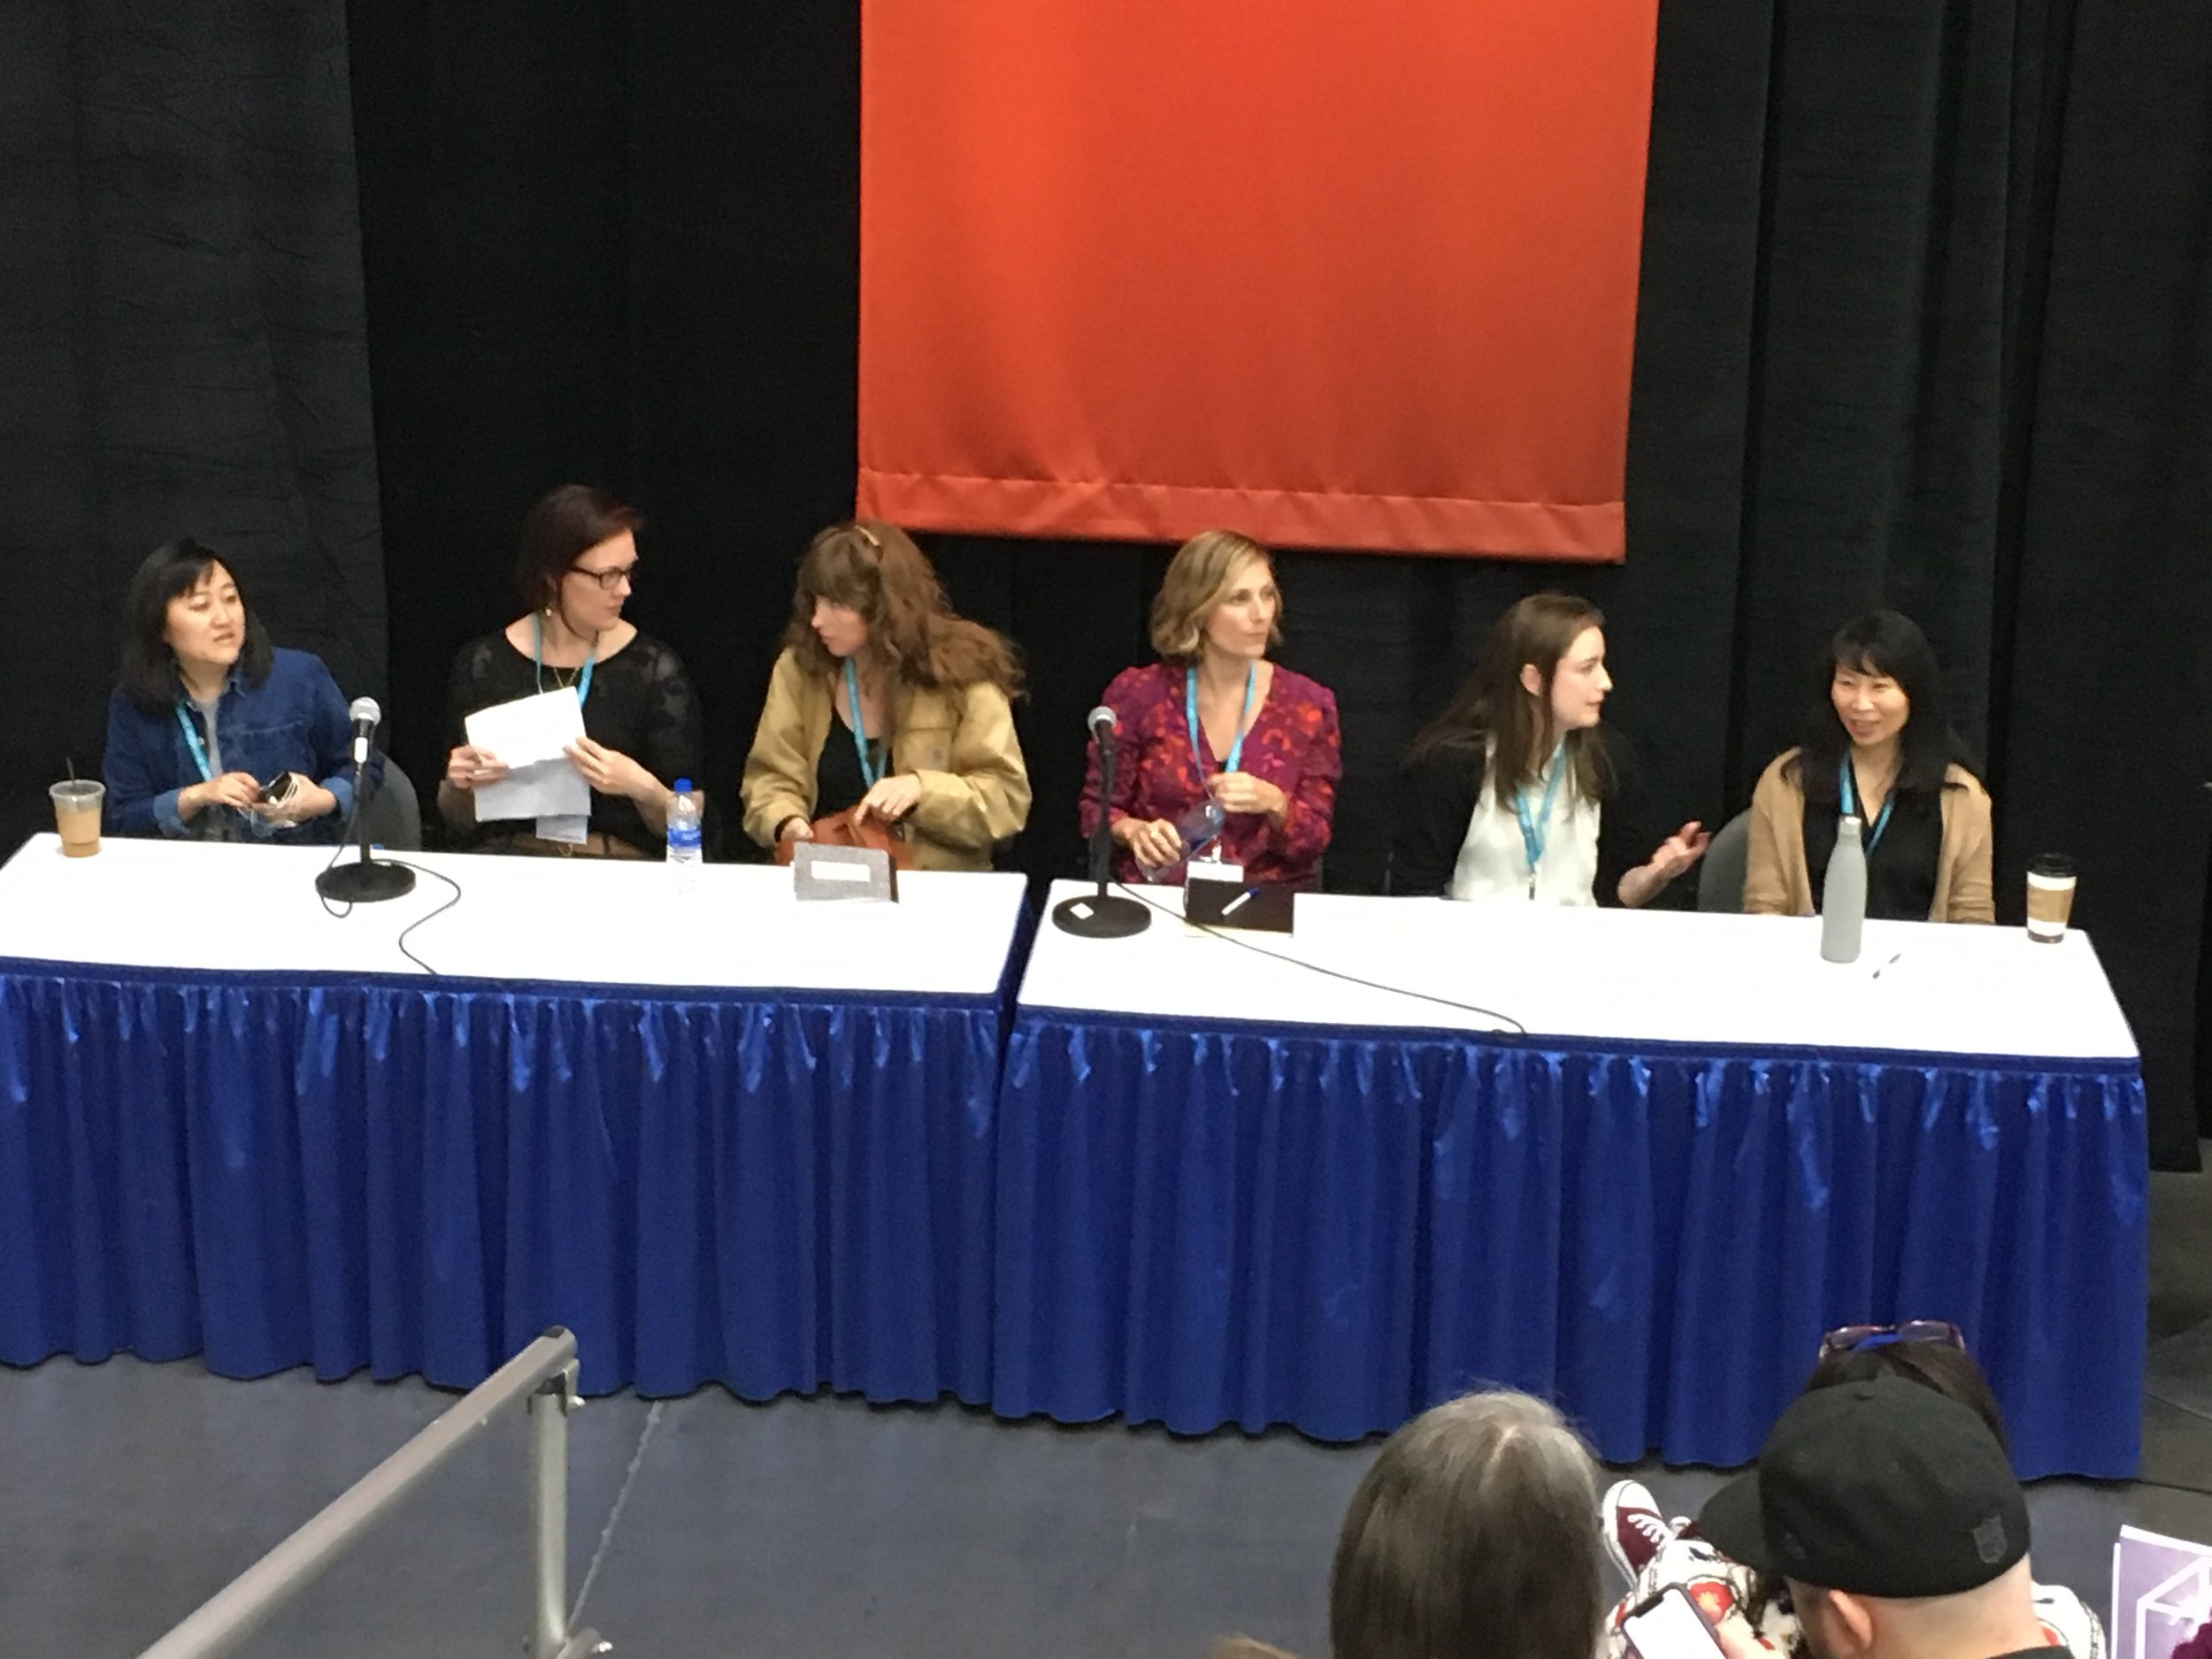 Tessa speaks on the value and challenges of writing strong female characters